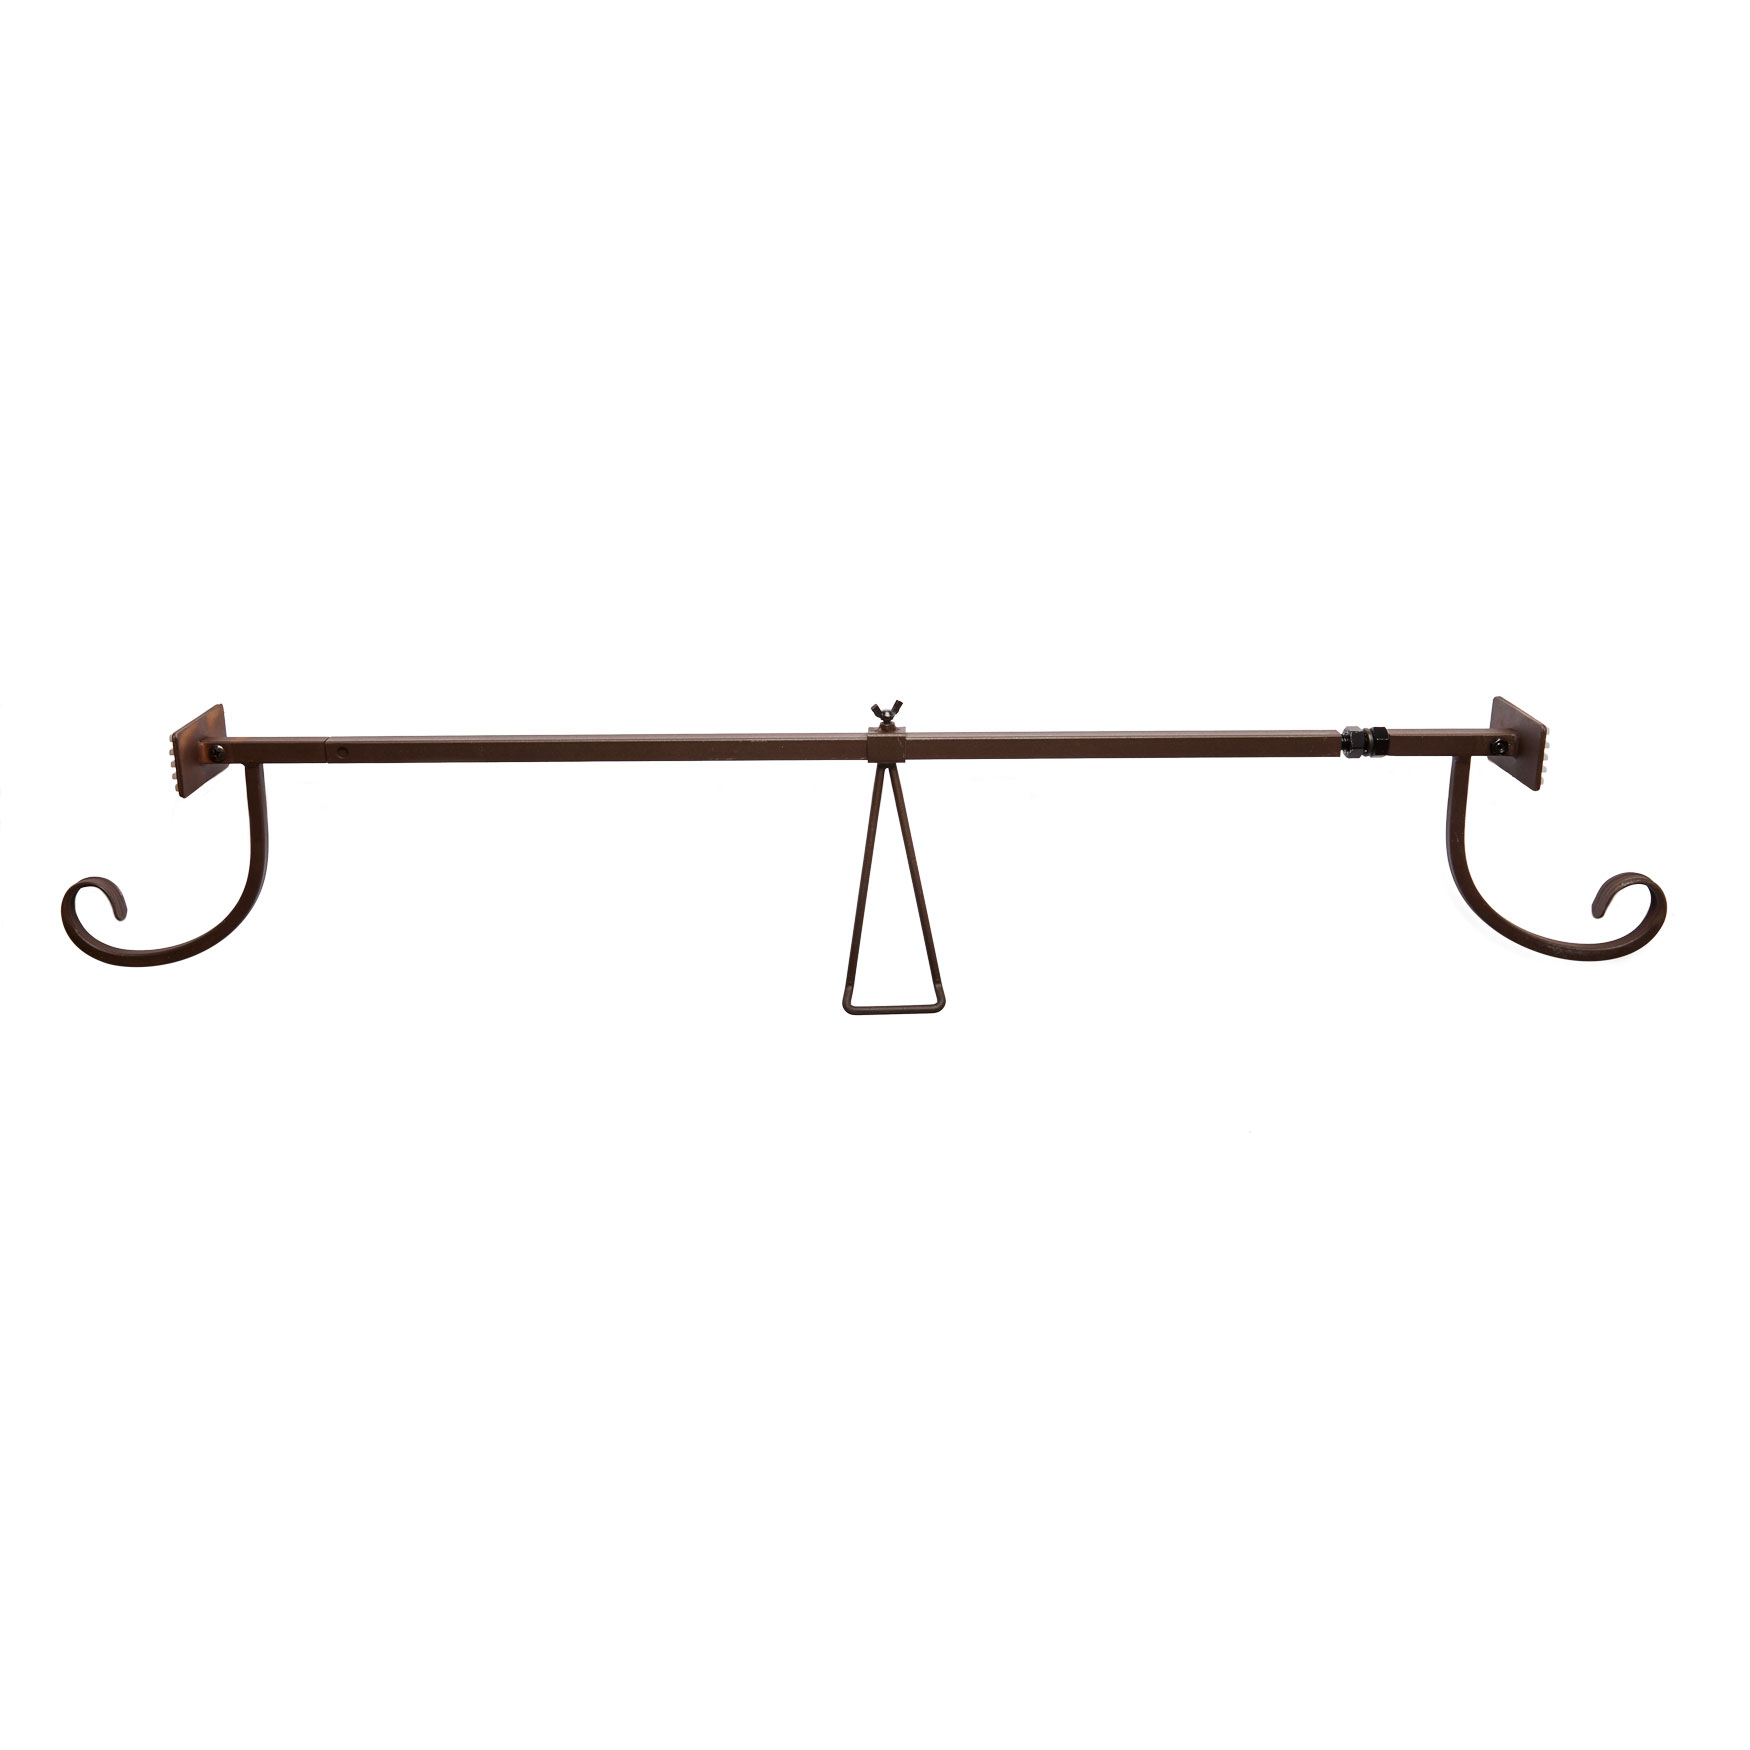 Garland Door Hanger, BROWN